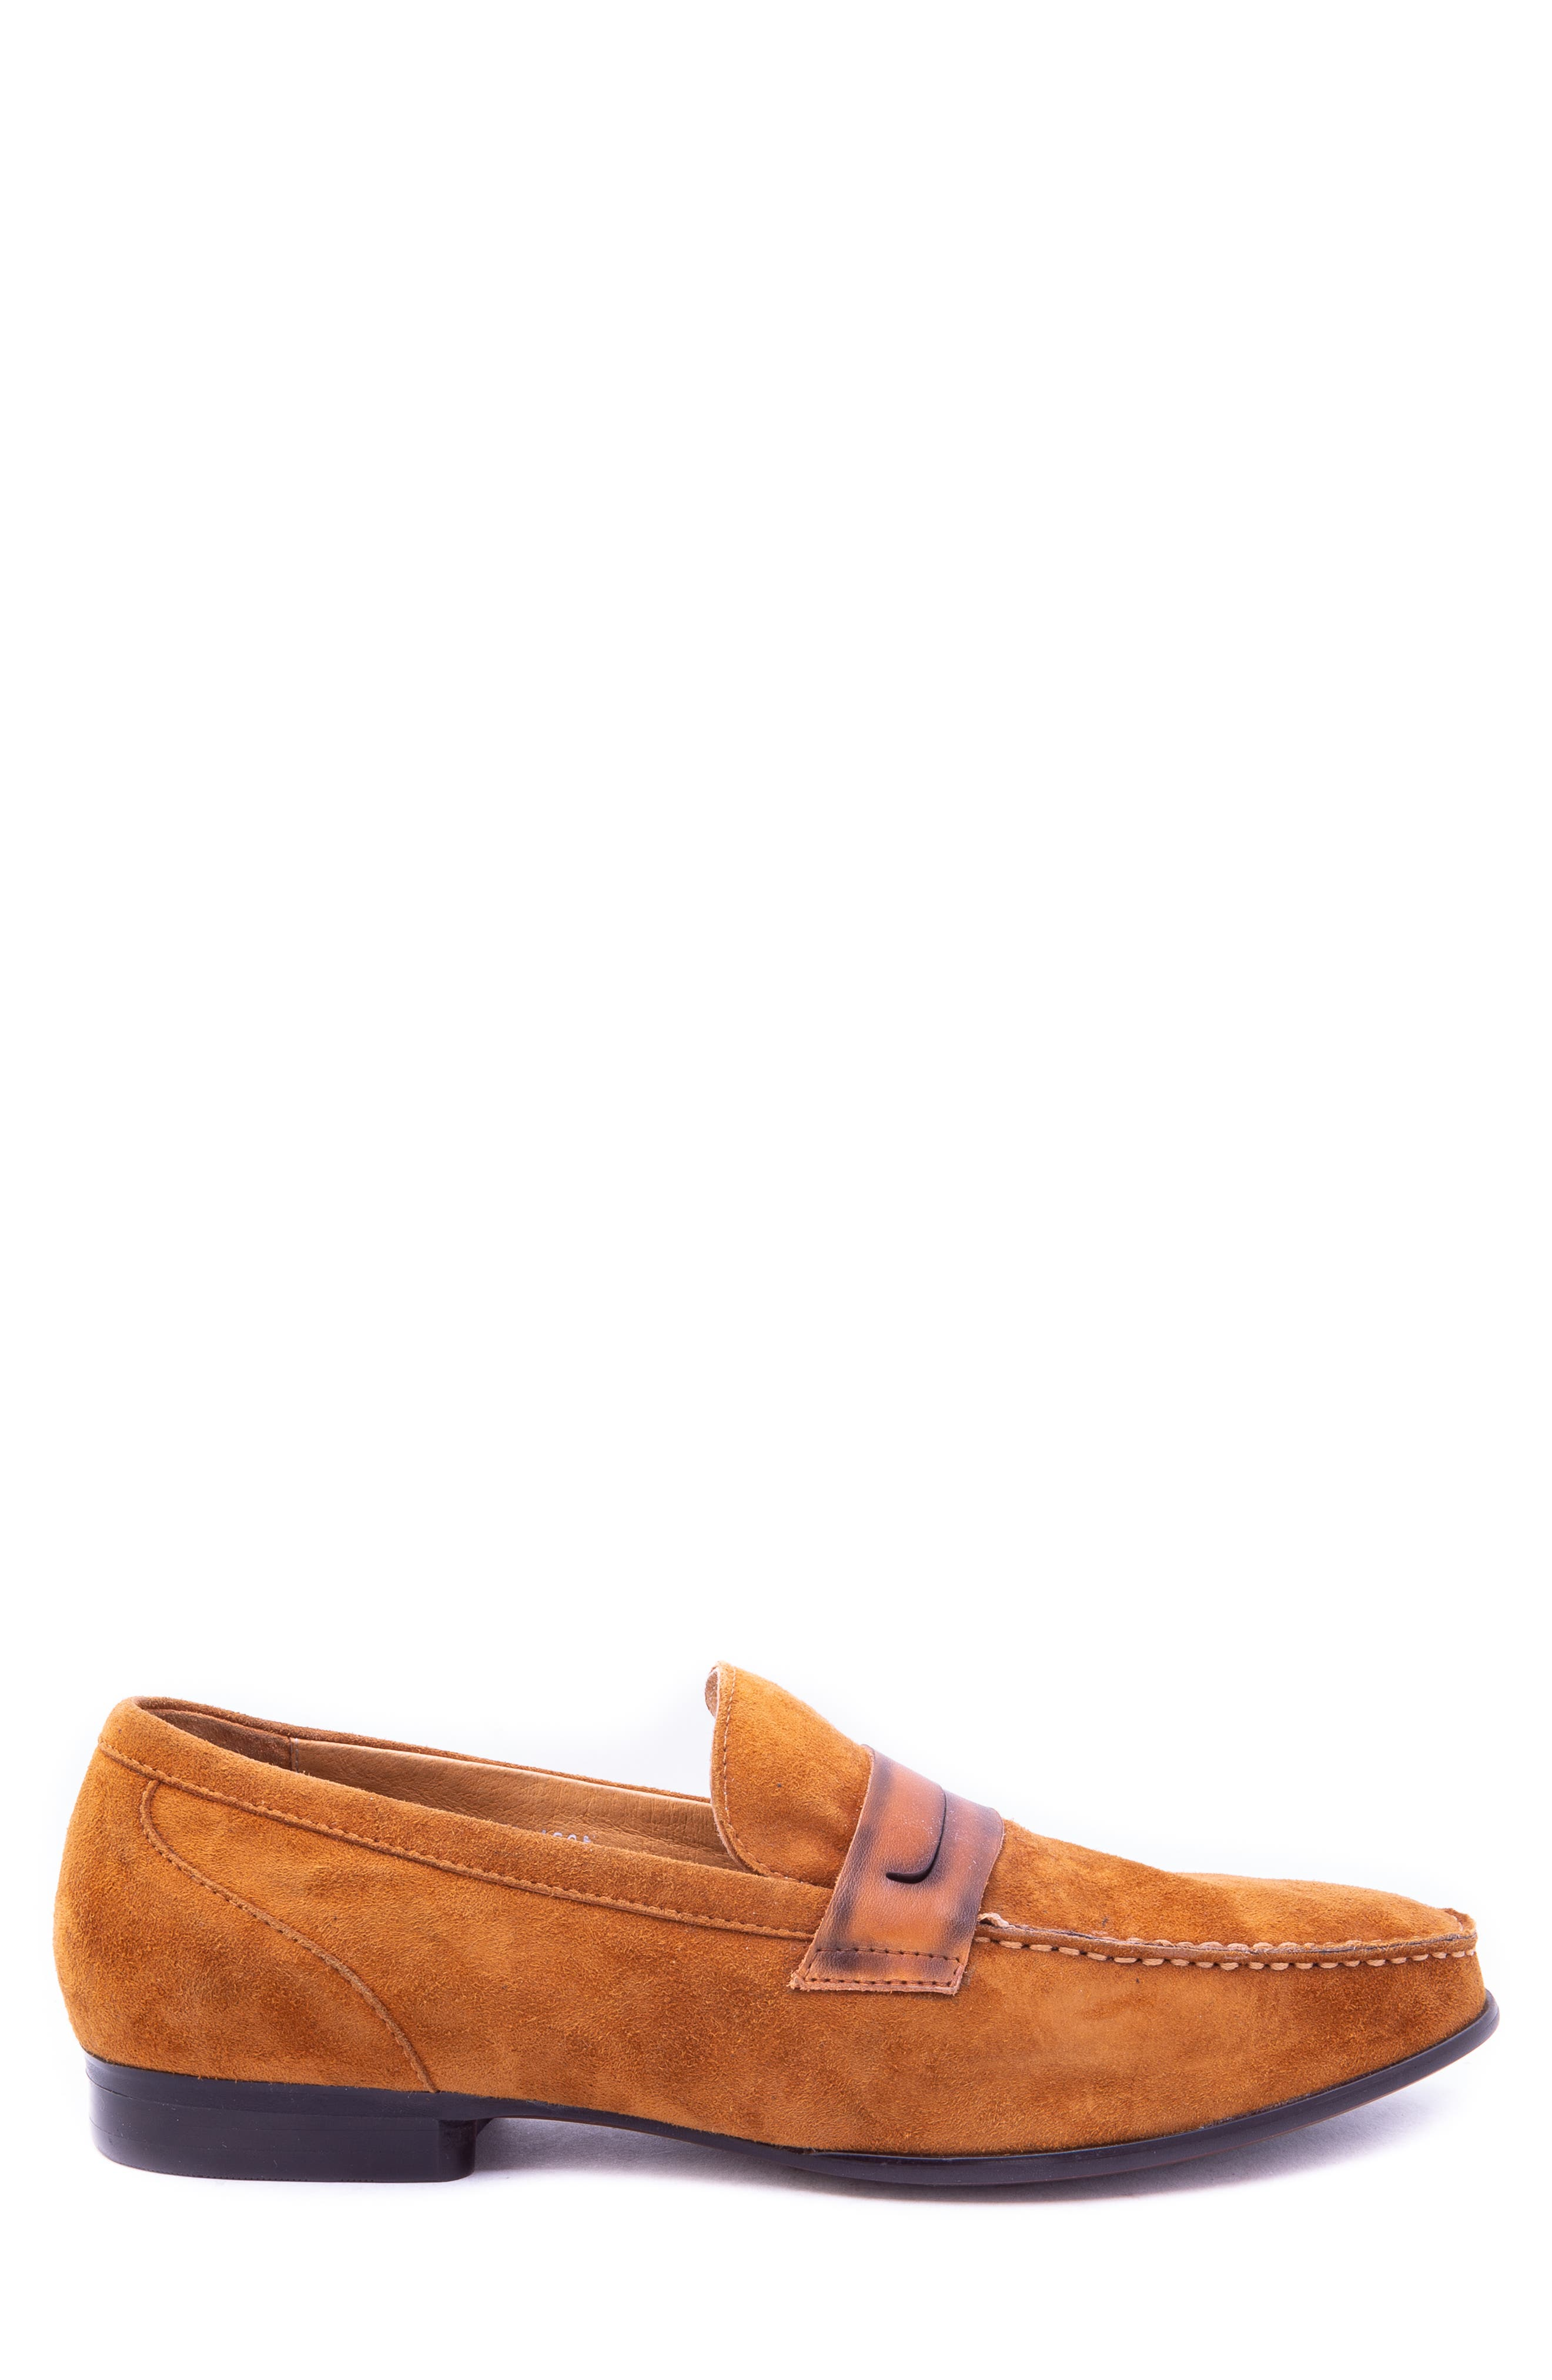 Opie Penny Loafer,                             Alternate thumbnail 3, color,                             COGNAC SUEDE/ LEATHER